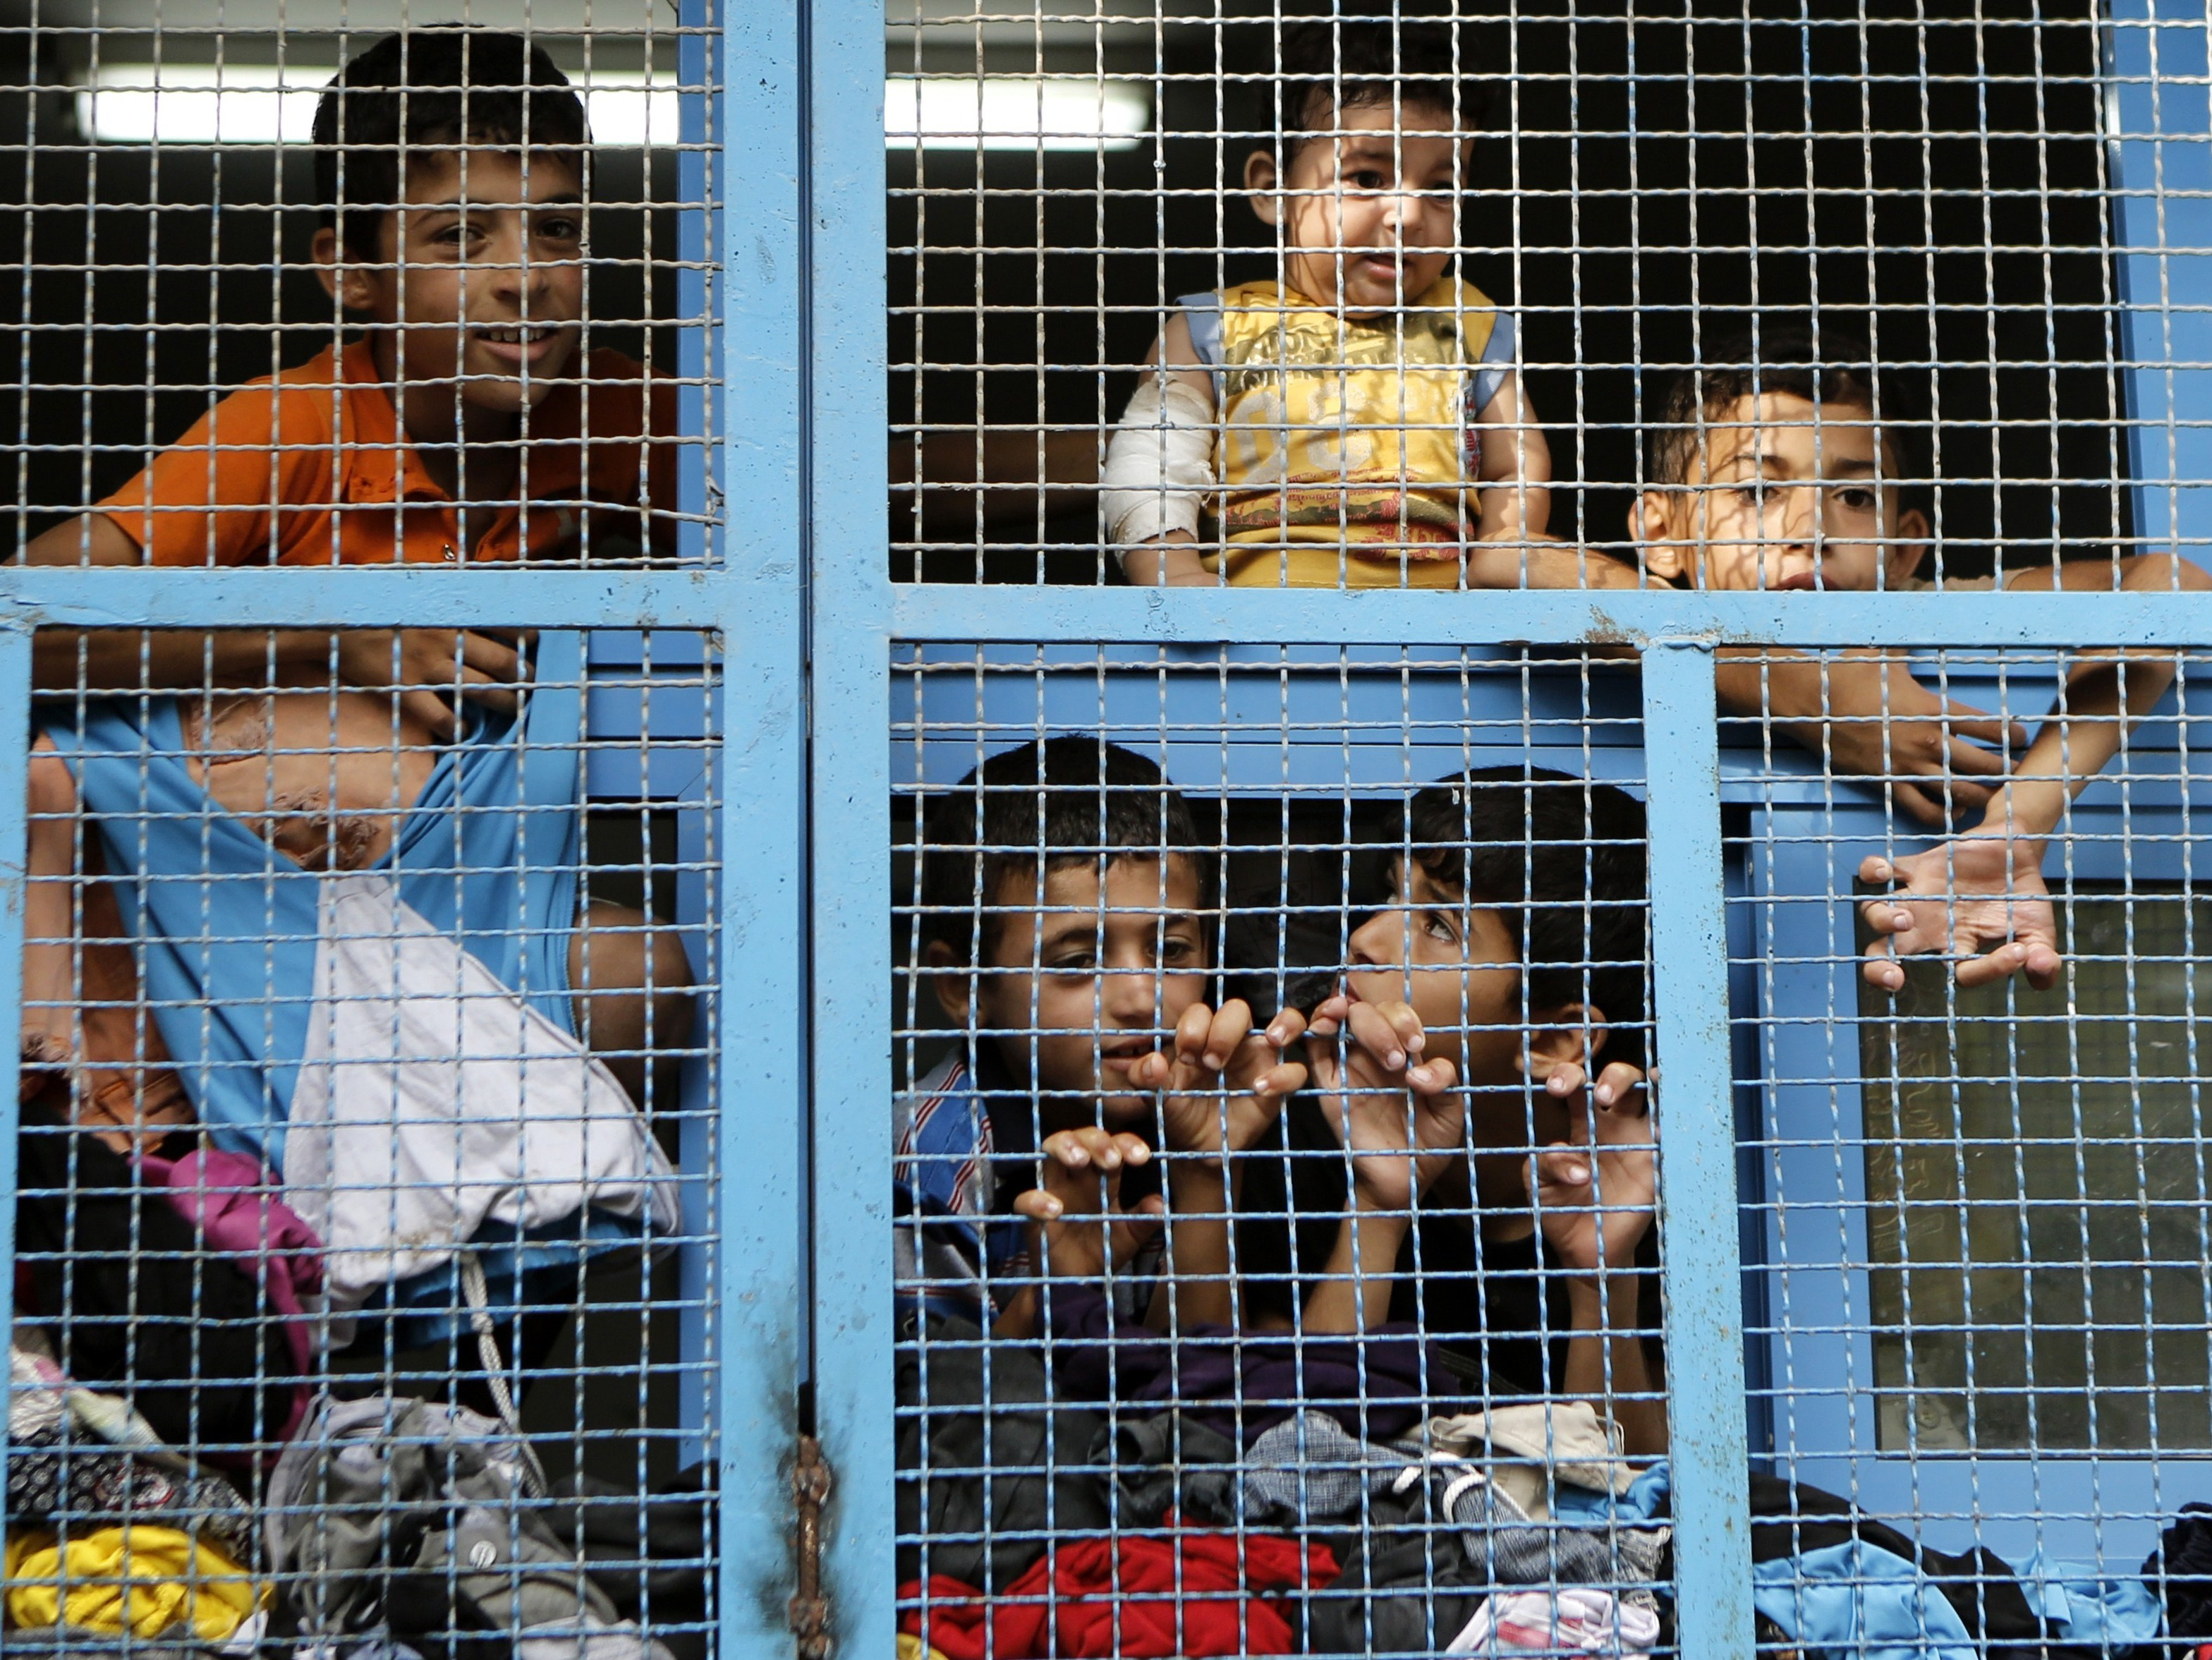 Displaced Palestinian children from Beit Hanoun in the northern Gaza Strip stand behind the window of a classroom July 23 at a UN school where displaced families took refuge after fleeing heavy fighting in the Gaza Strip.